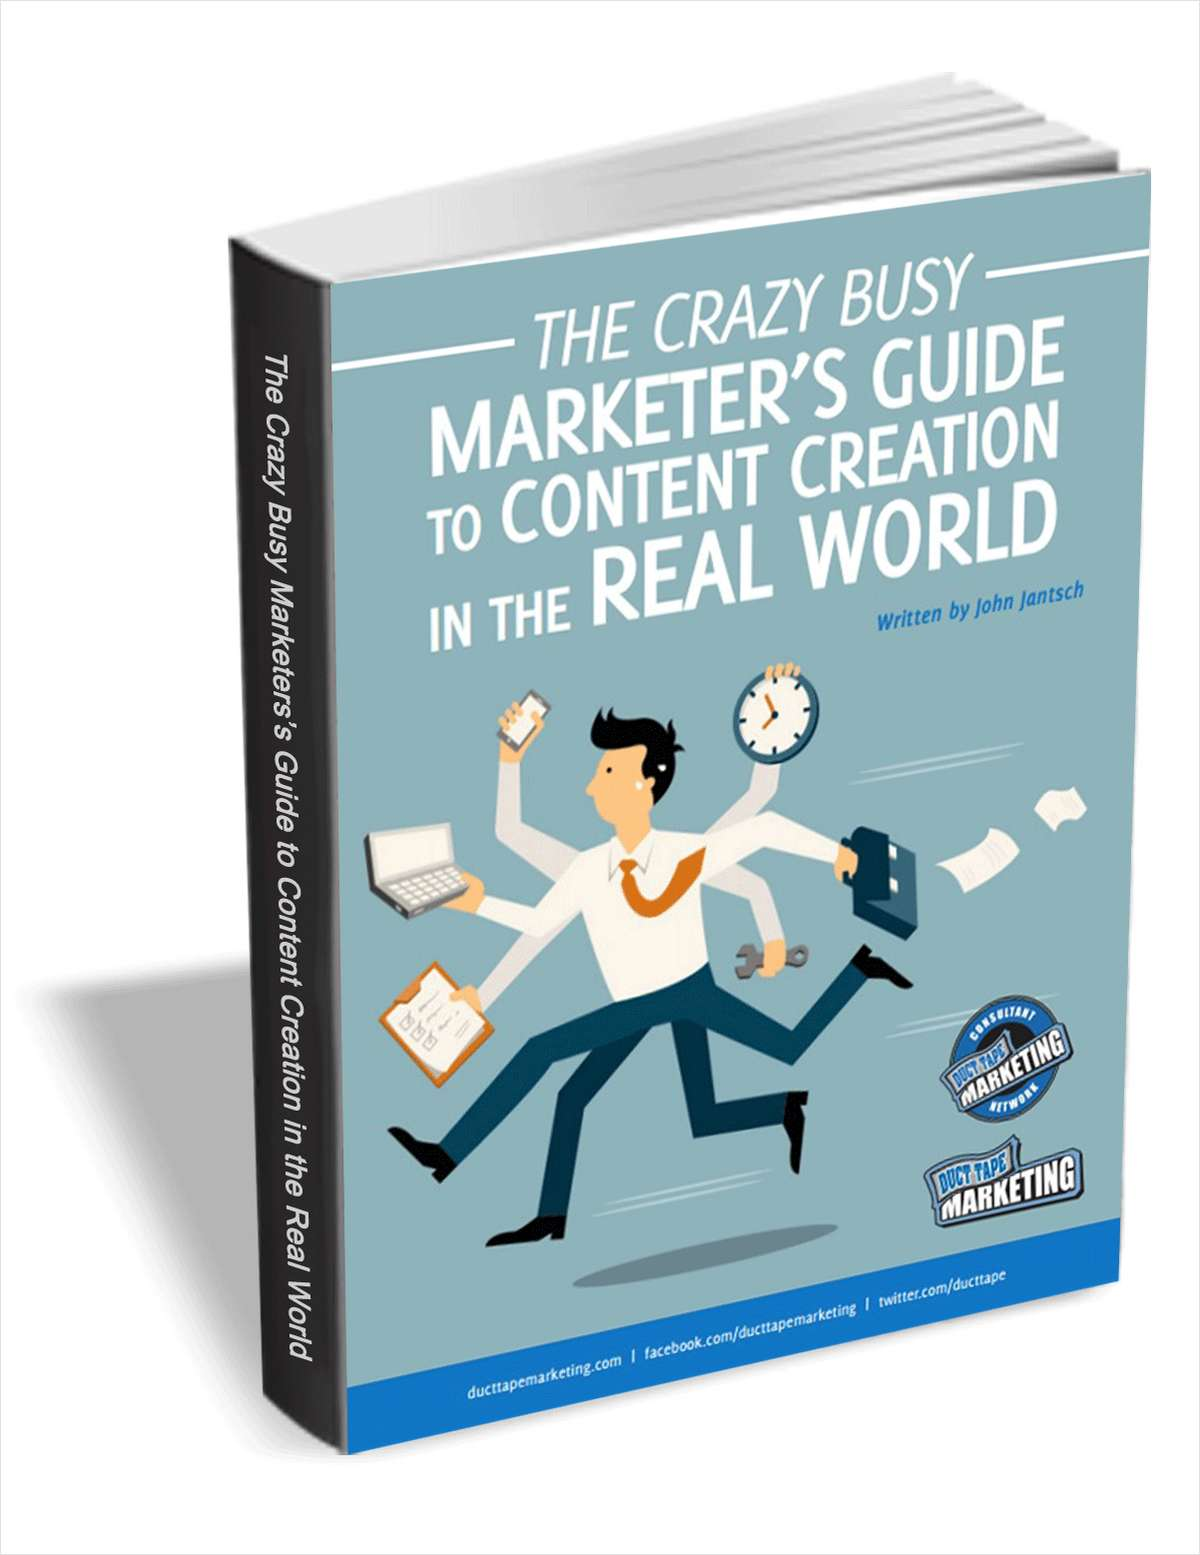 The Crazy Busy Marketer's Guide to Content Creation in the Real World